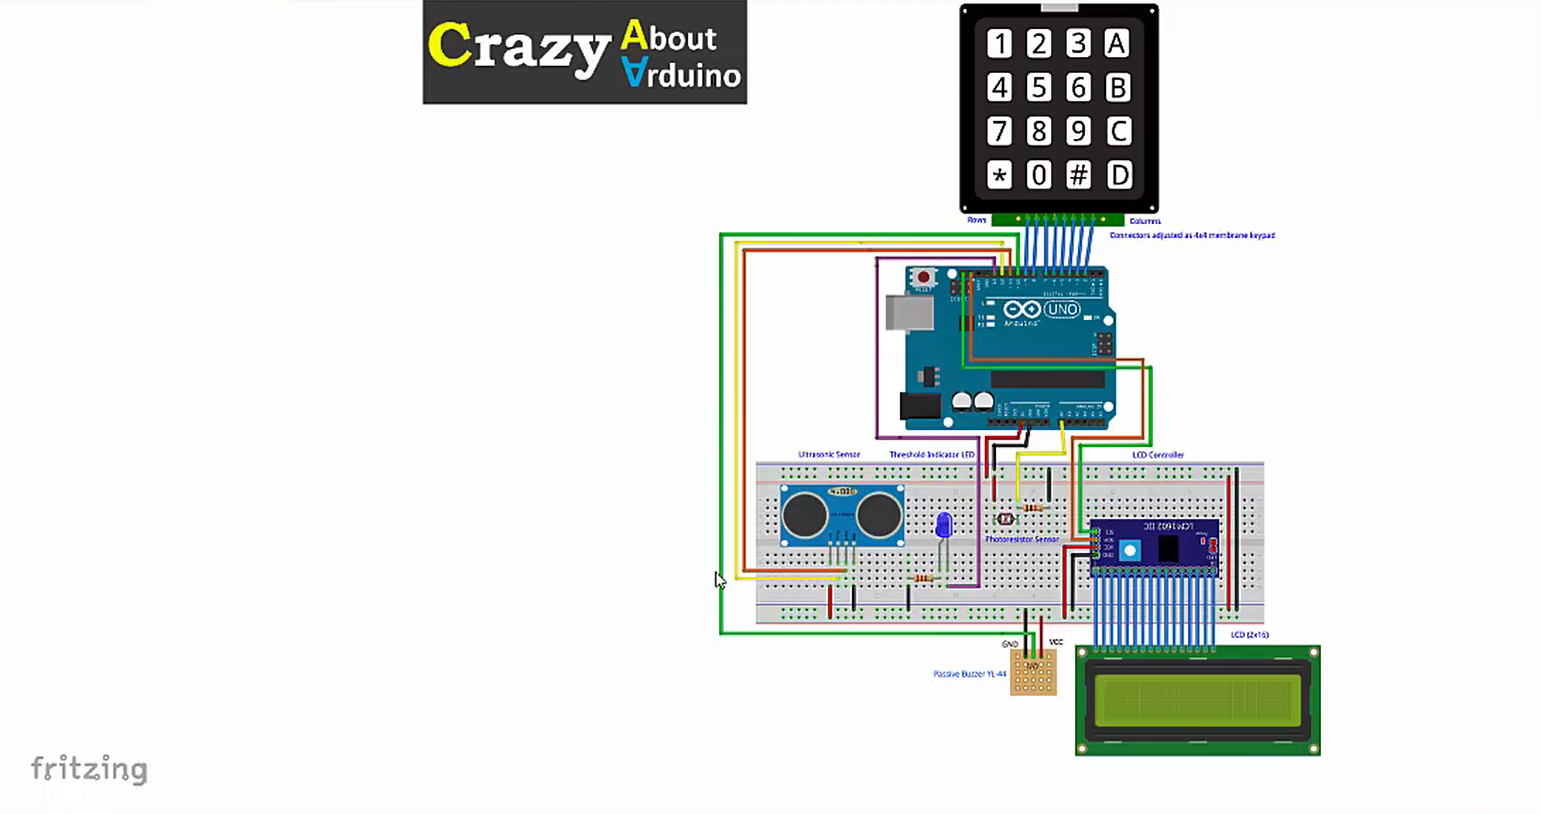 Crazy About Arduino Level 2 Learn To Use Keypad Lcd Ultrasonic Sensor Circuit In This Course We Will Build An Project Using The Platform And Several Sensors Be Used As A Central Brain Connect